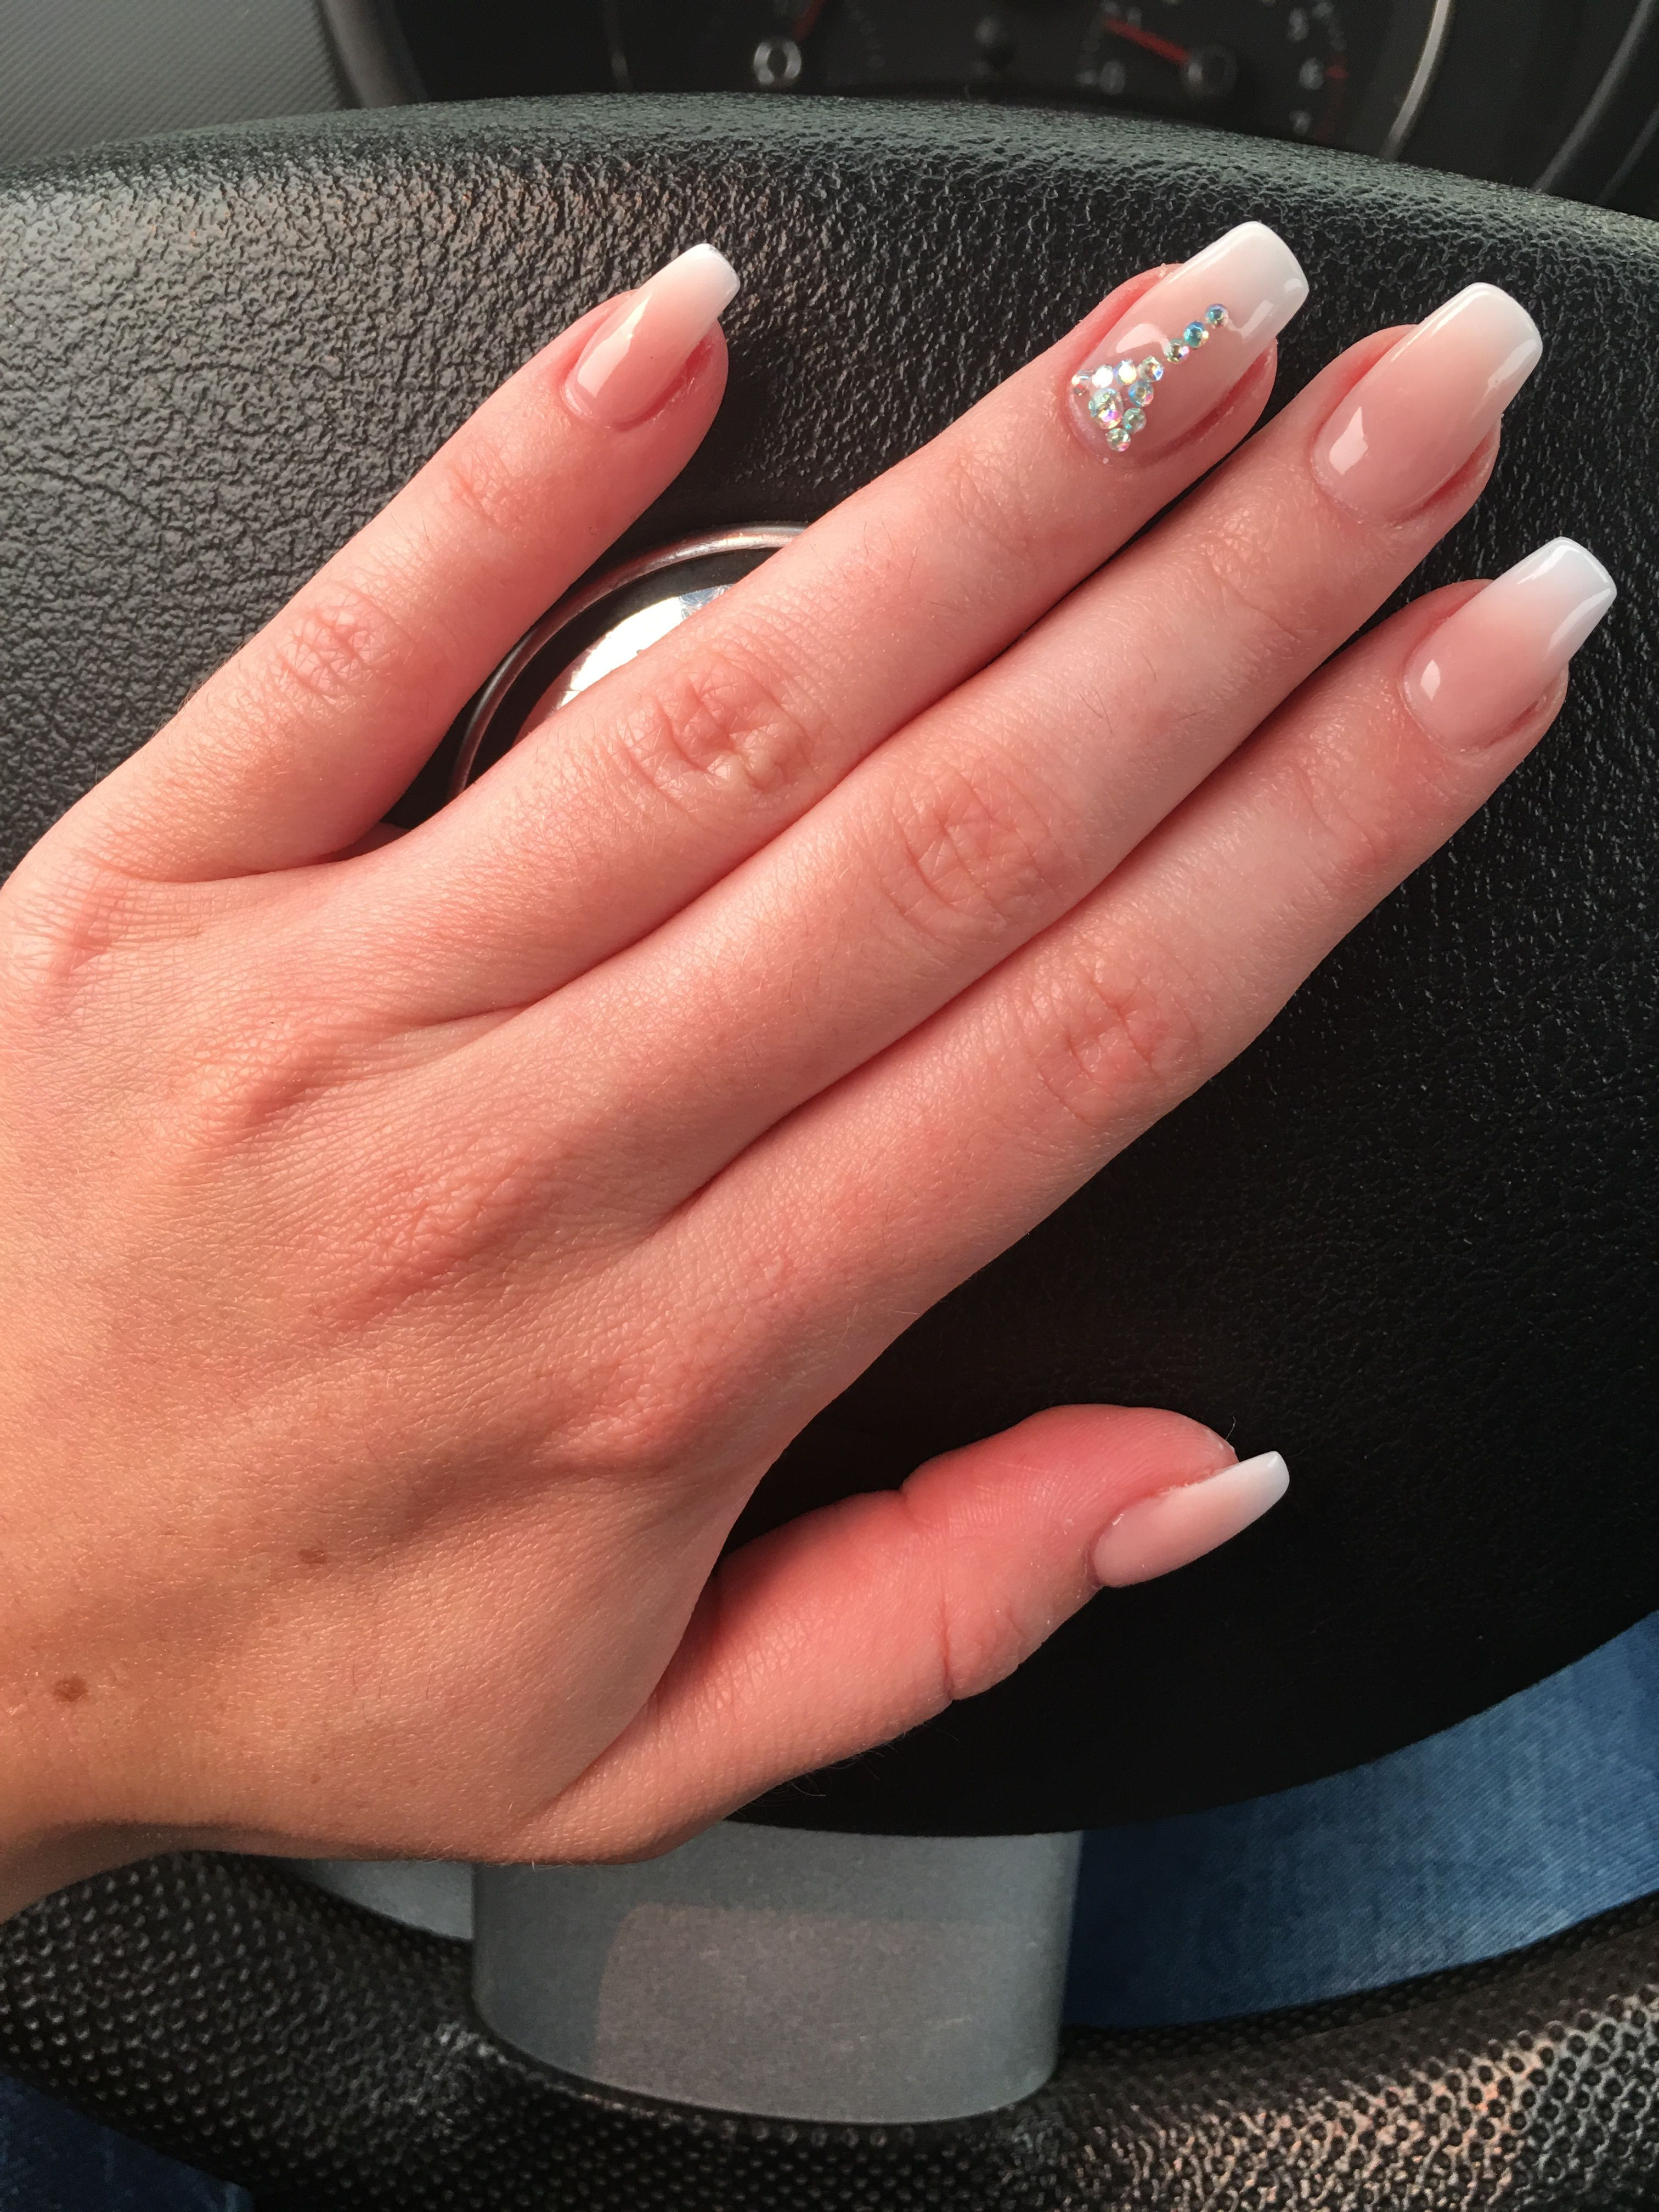 Ombre Nails Summer Nail Design Gems Diamonds Acrylics Natural Pink Square Shape Coffin Shape Nail Designs Summer Acrylic Nail Designs Summer Ombre Nails